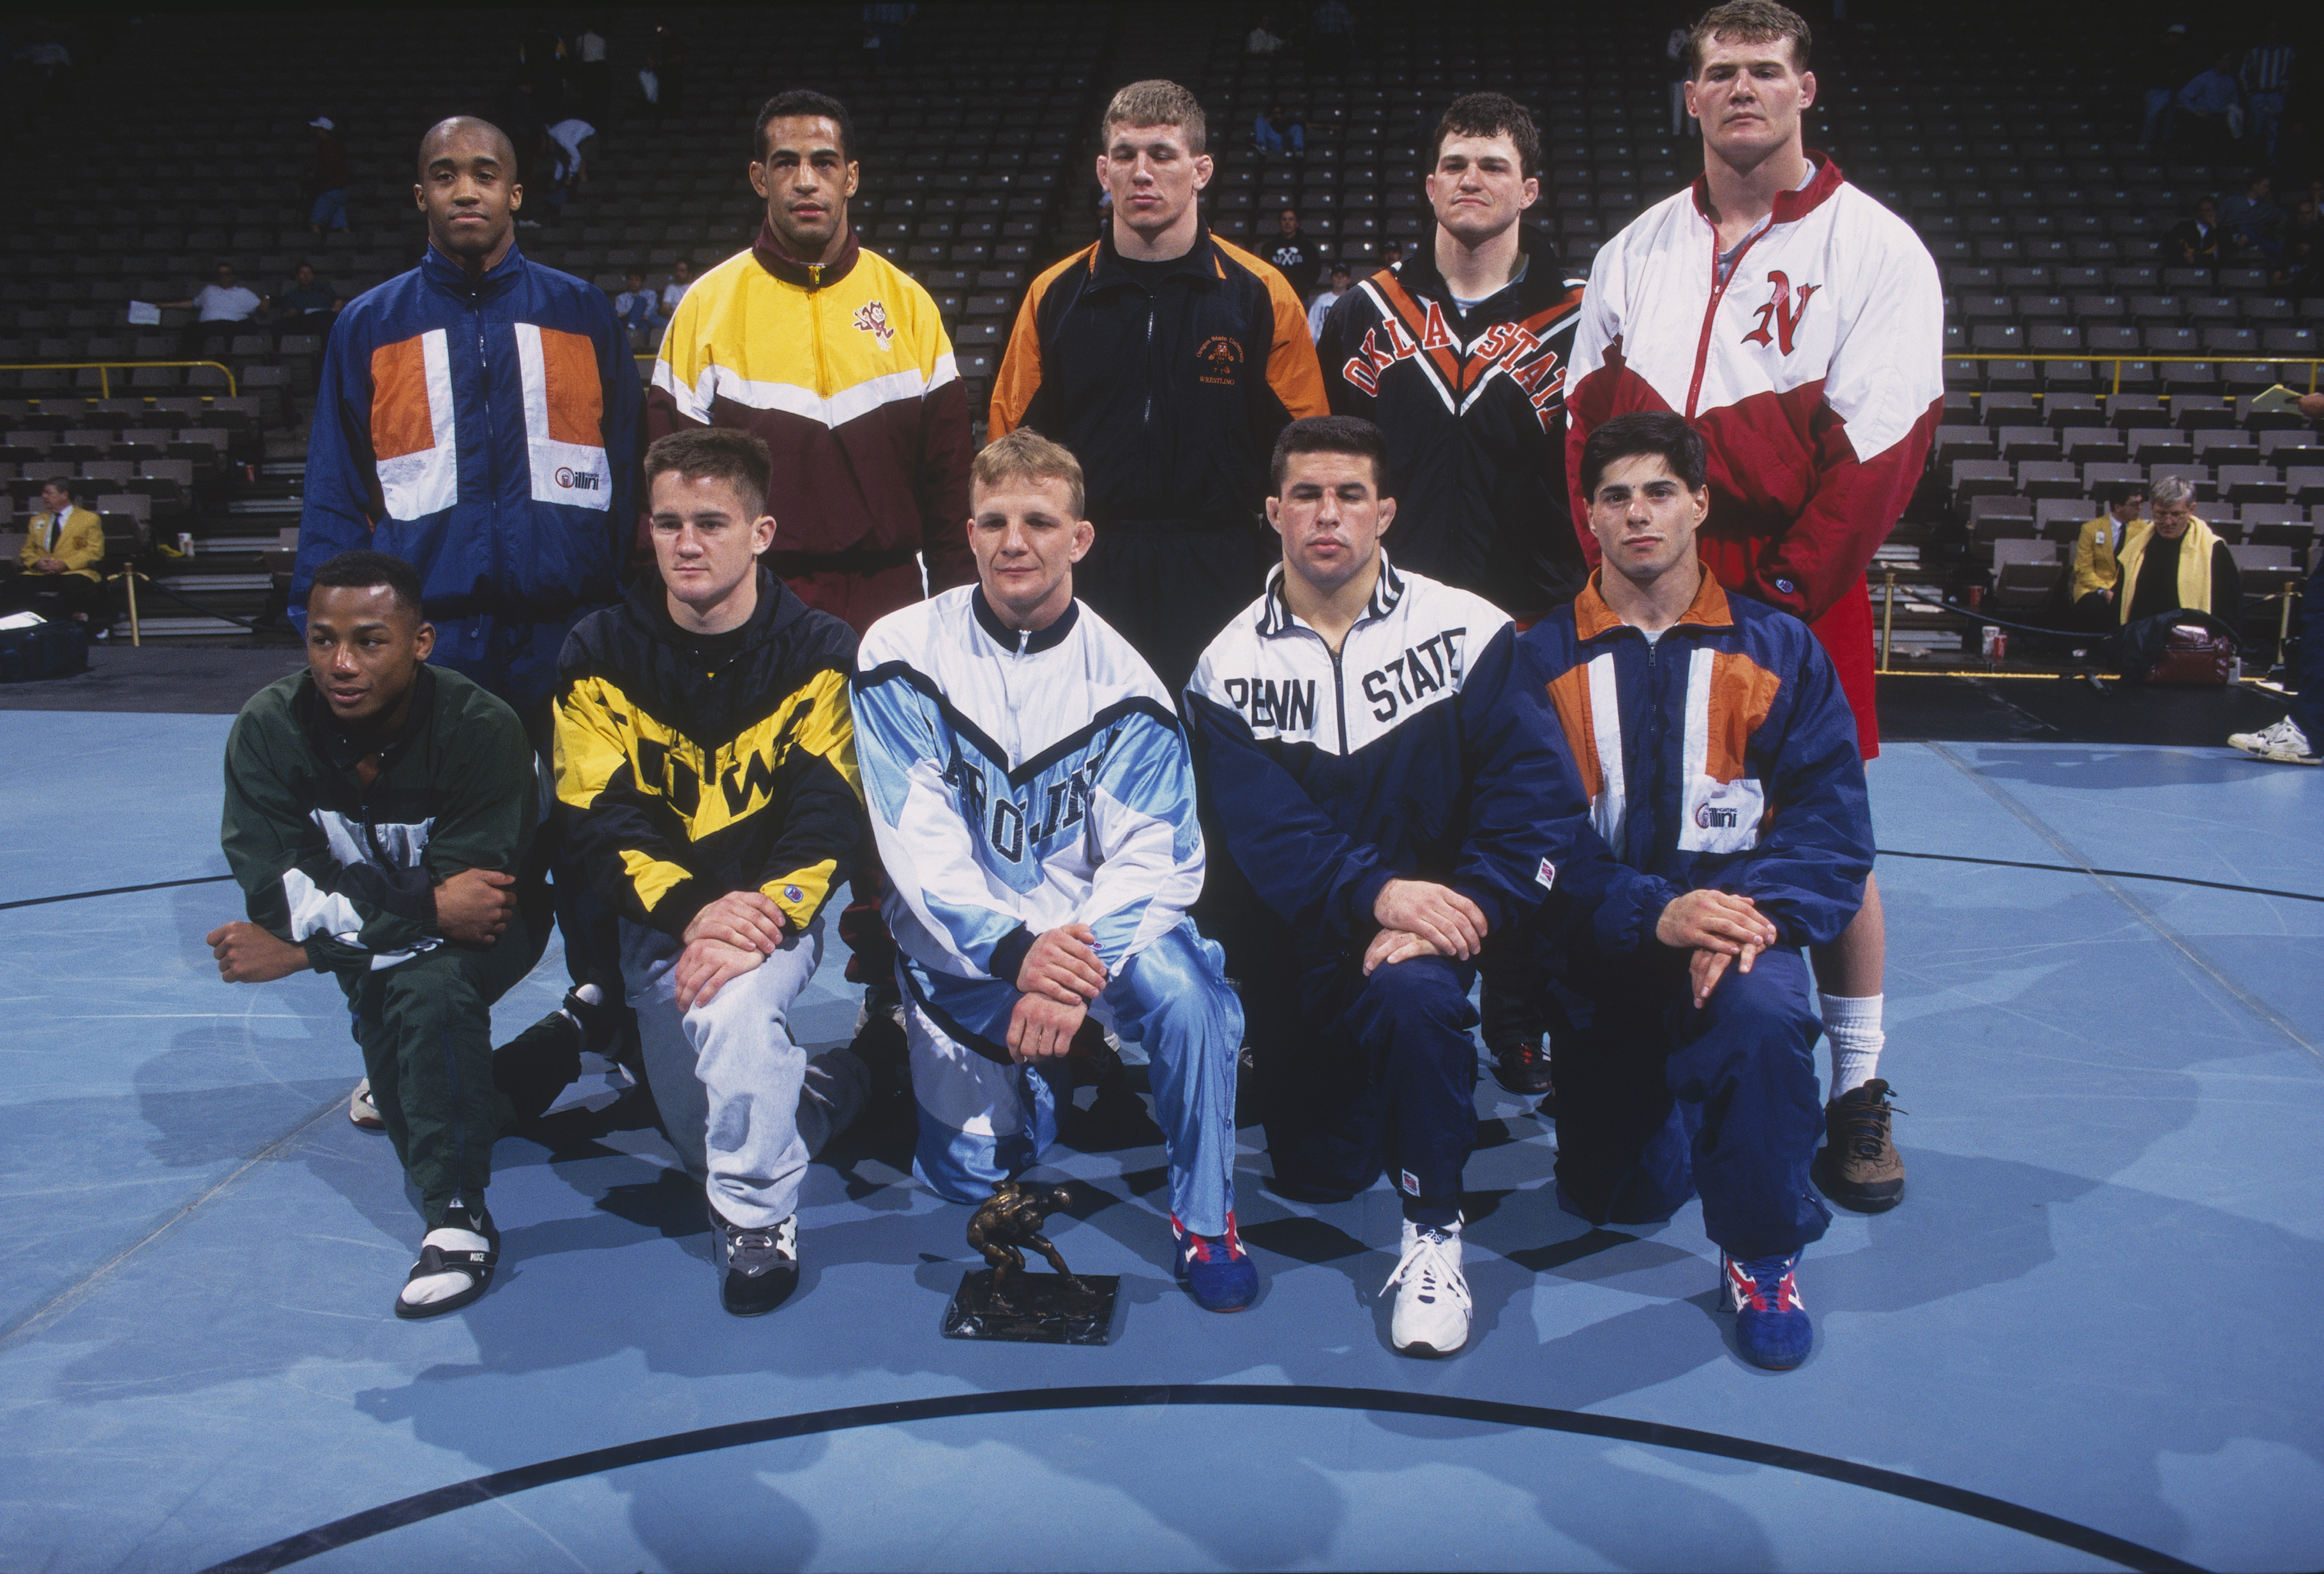 1995 NCAA Division 1 Wrestling Championships